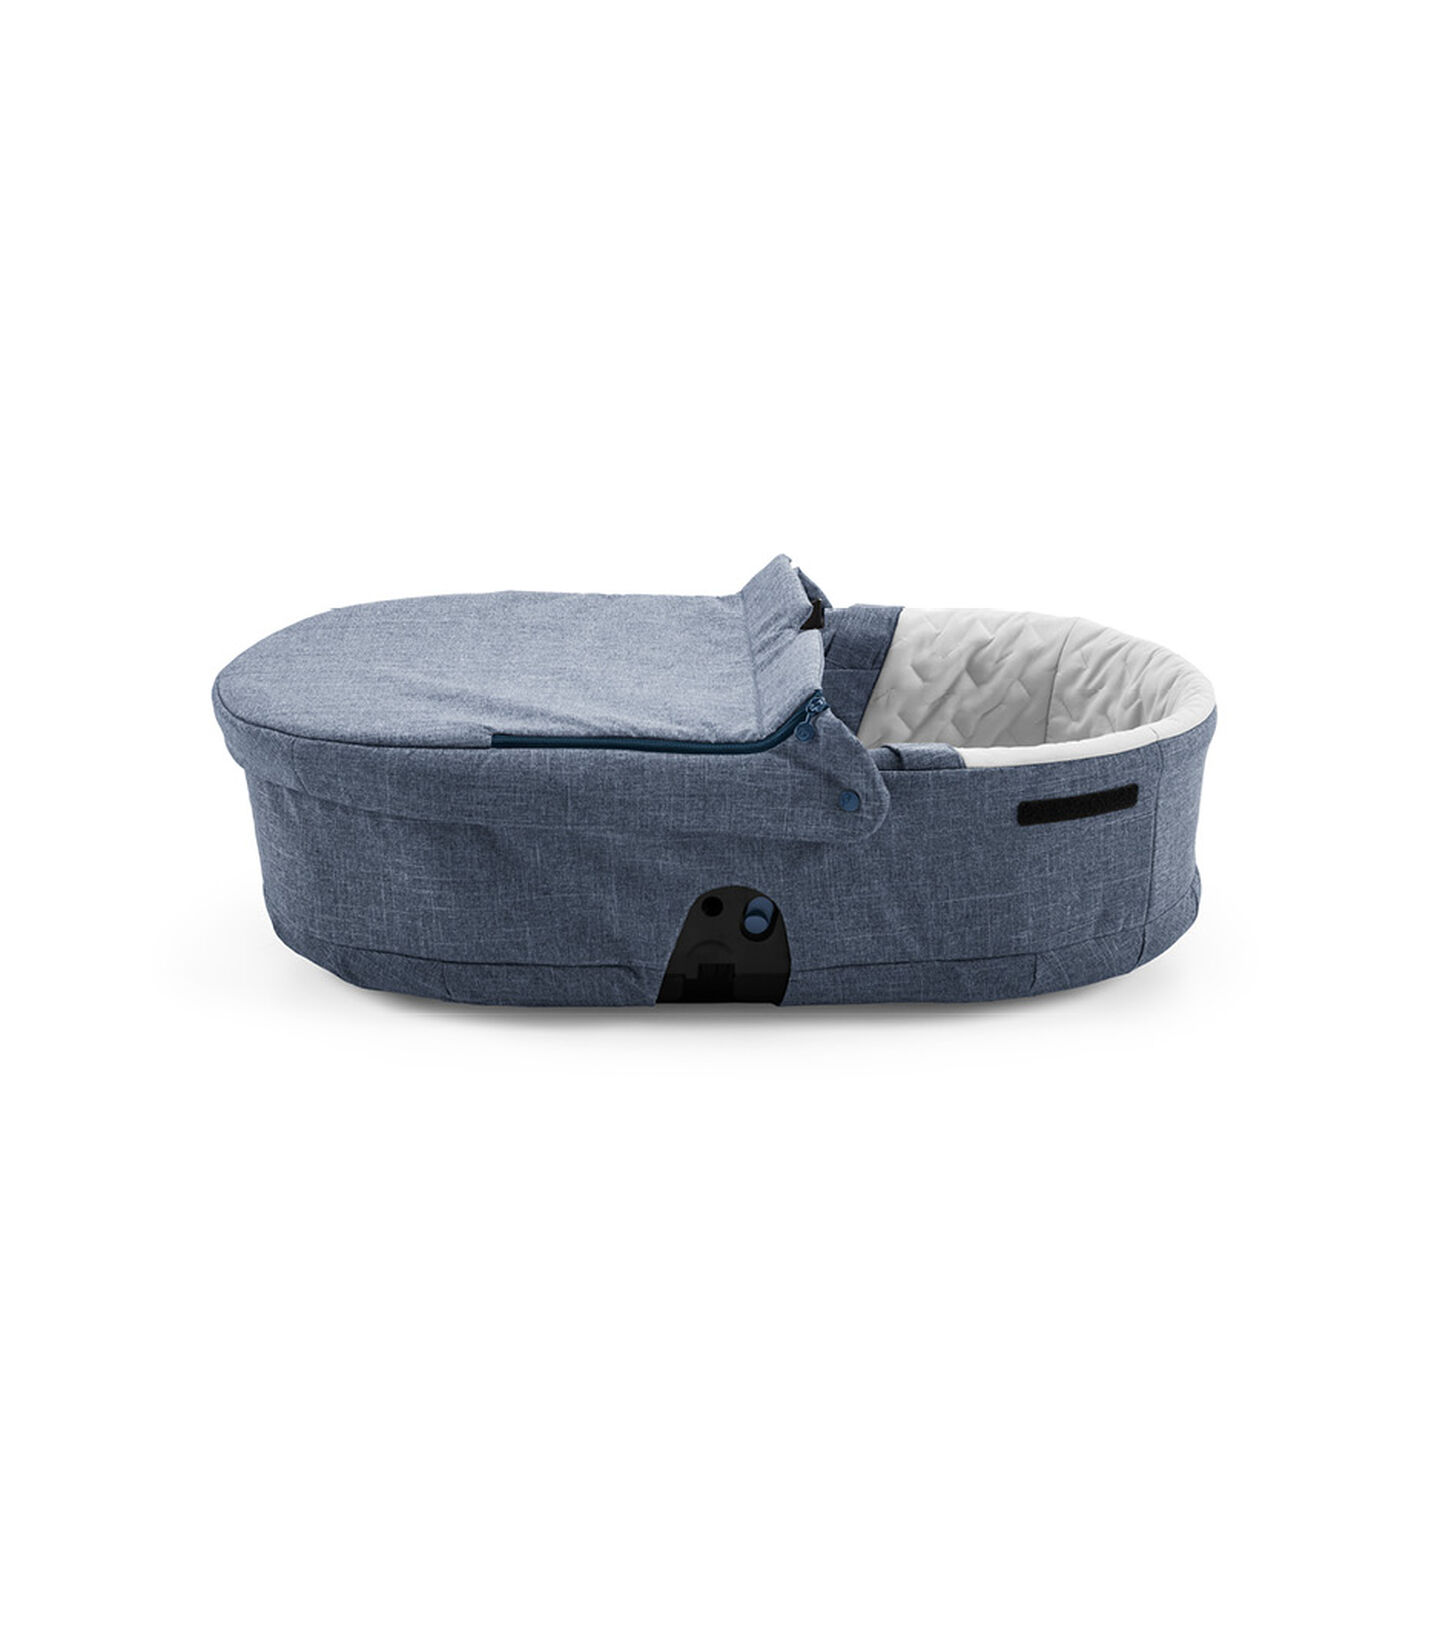 Stokke® Beat™ sparepart. Carry Cot Textile, Blue Melange. view 2